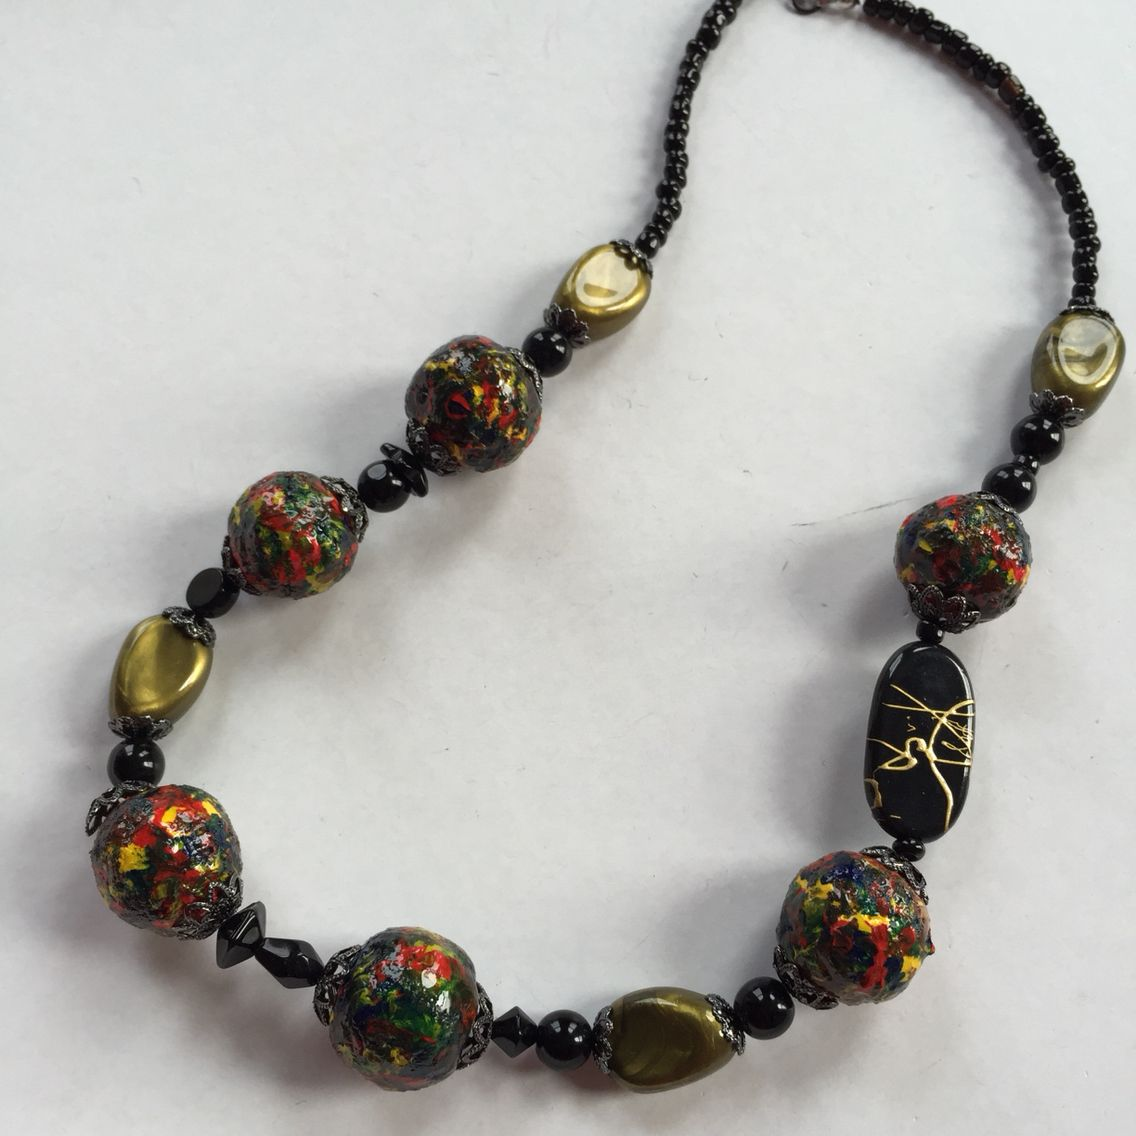 #jewelry #necklace #beads made from #newspaper @nytimes #glue #resin #handmade #handcrafted #upcycled #recycled #material #multicolor #unique #art #craft #hand #painted